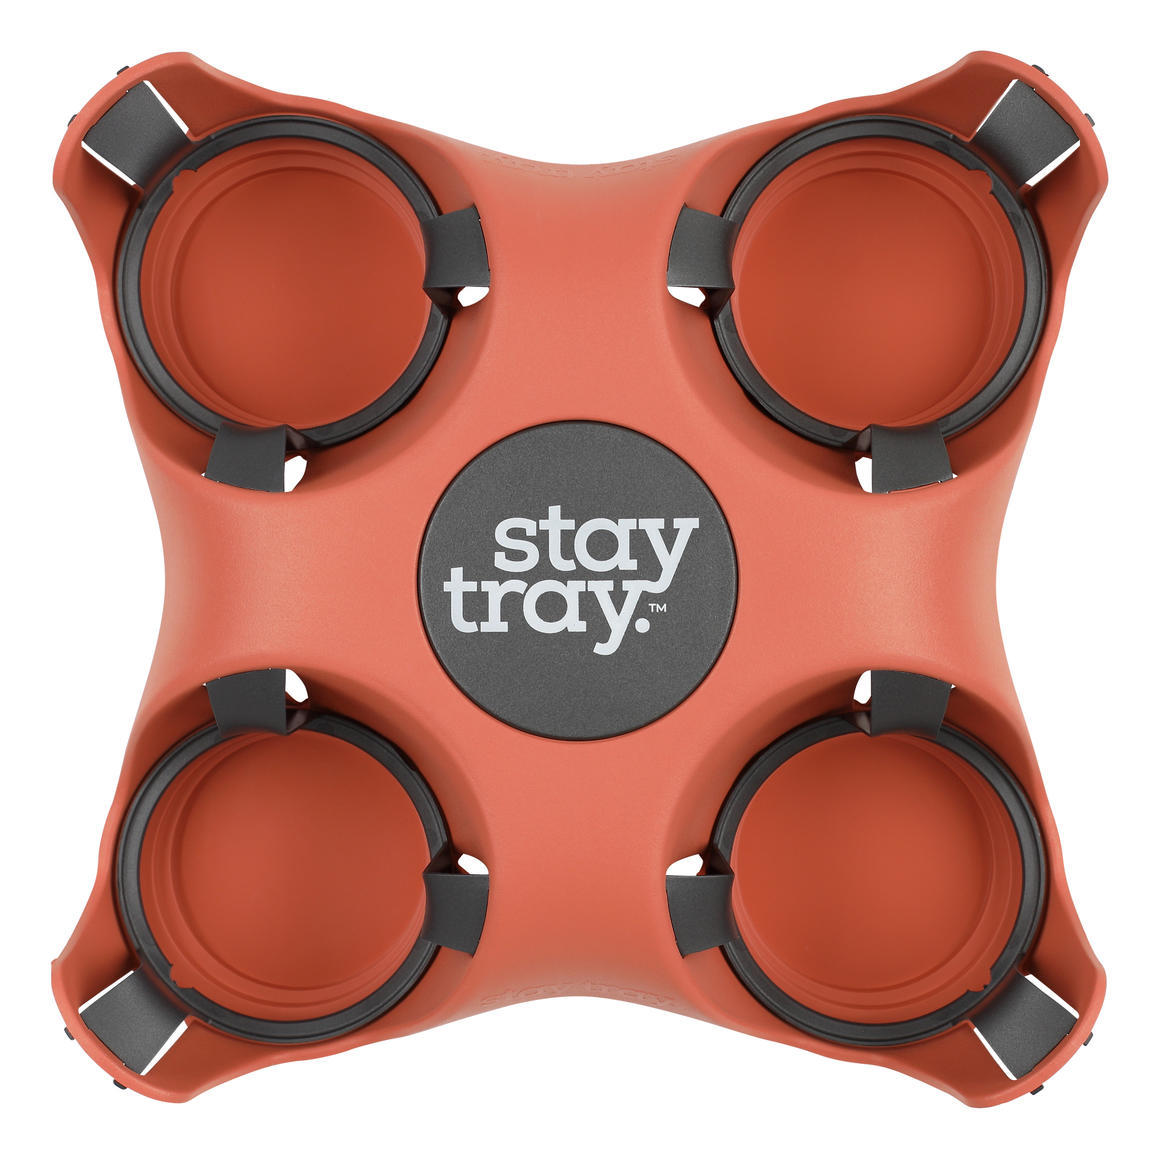 Stay tray Four Cup Holder Sunrise   Trada Marketplace